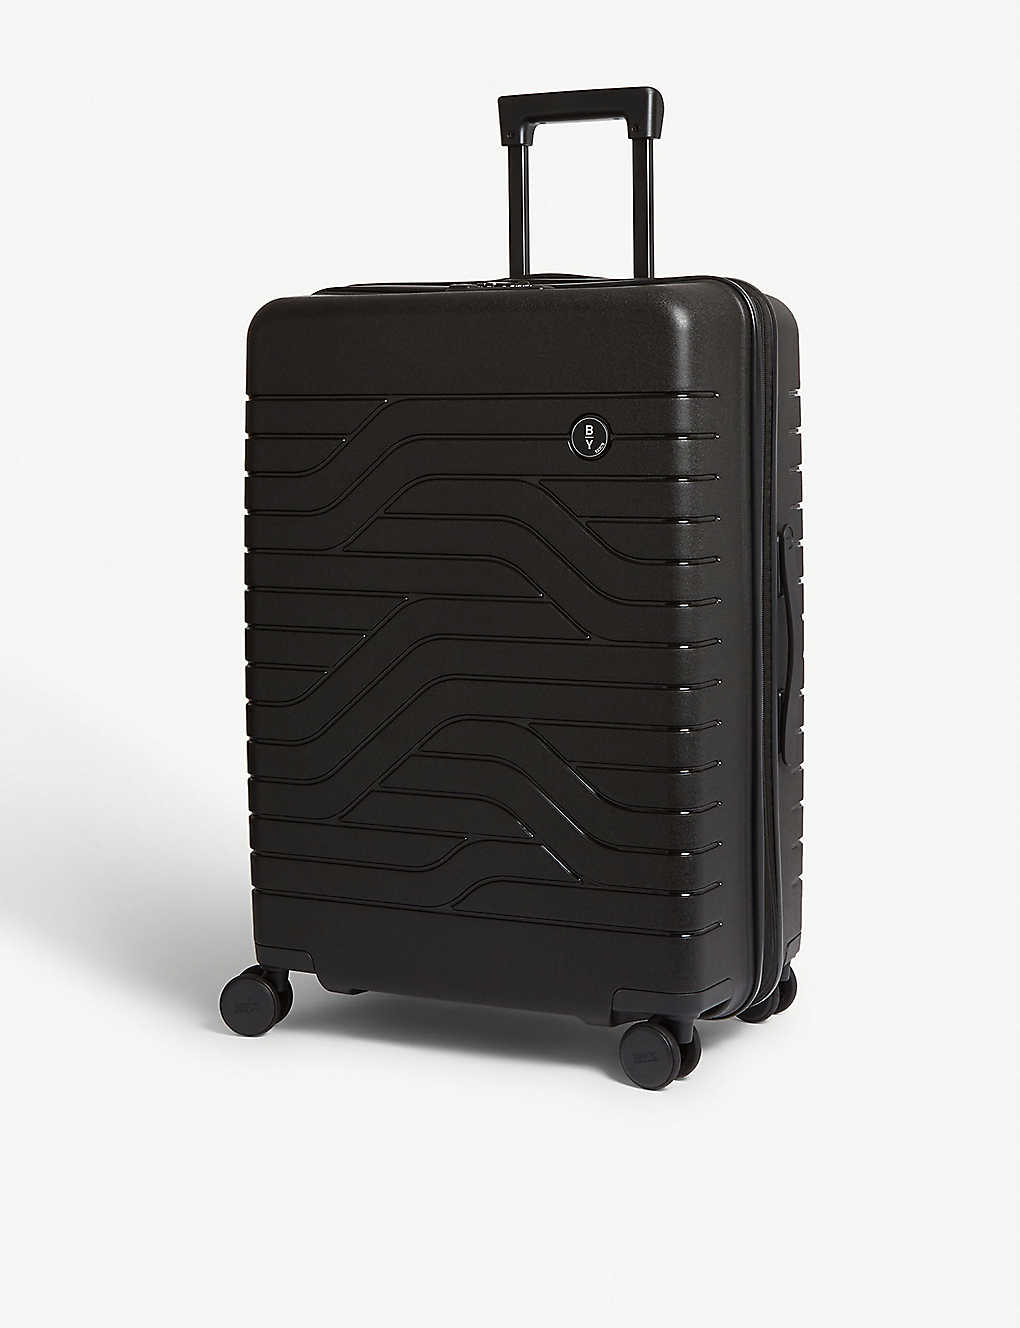 BY BY BRICS: Ulisse Spinner suitcase 71cm